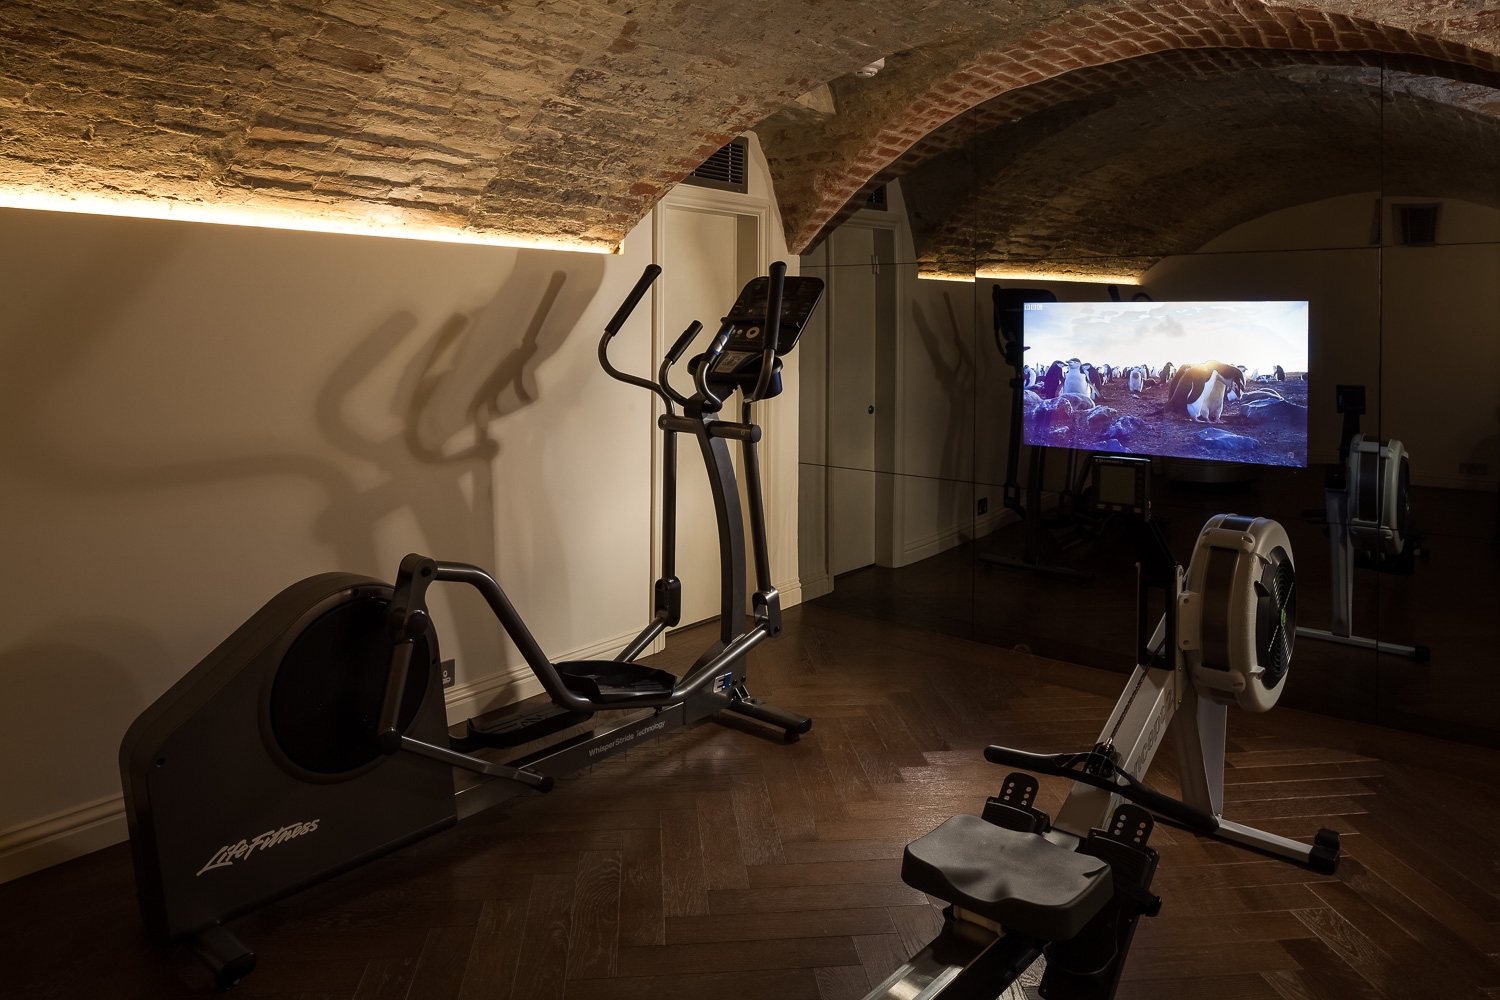 Country Manor - Basement Gym